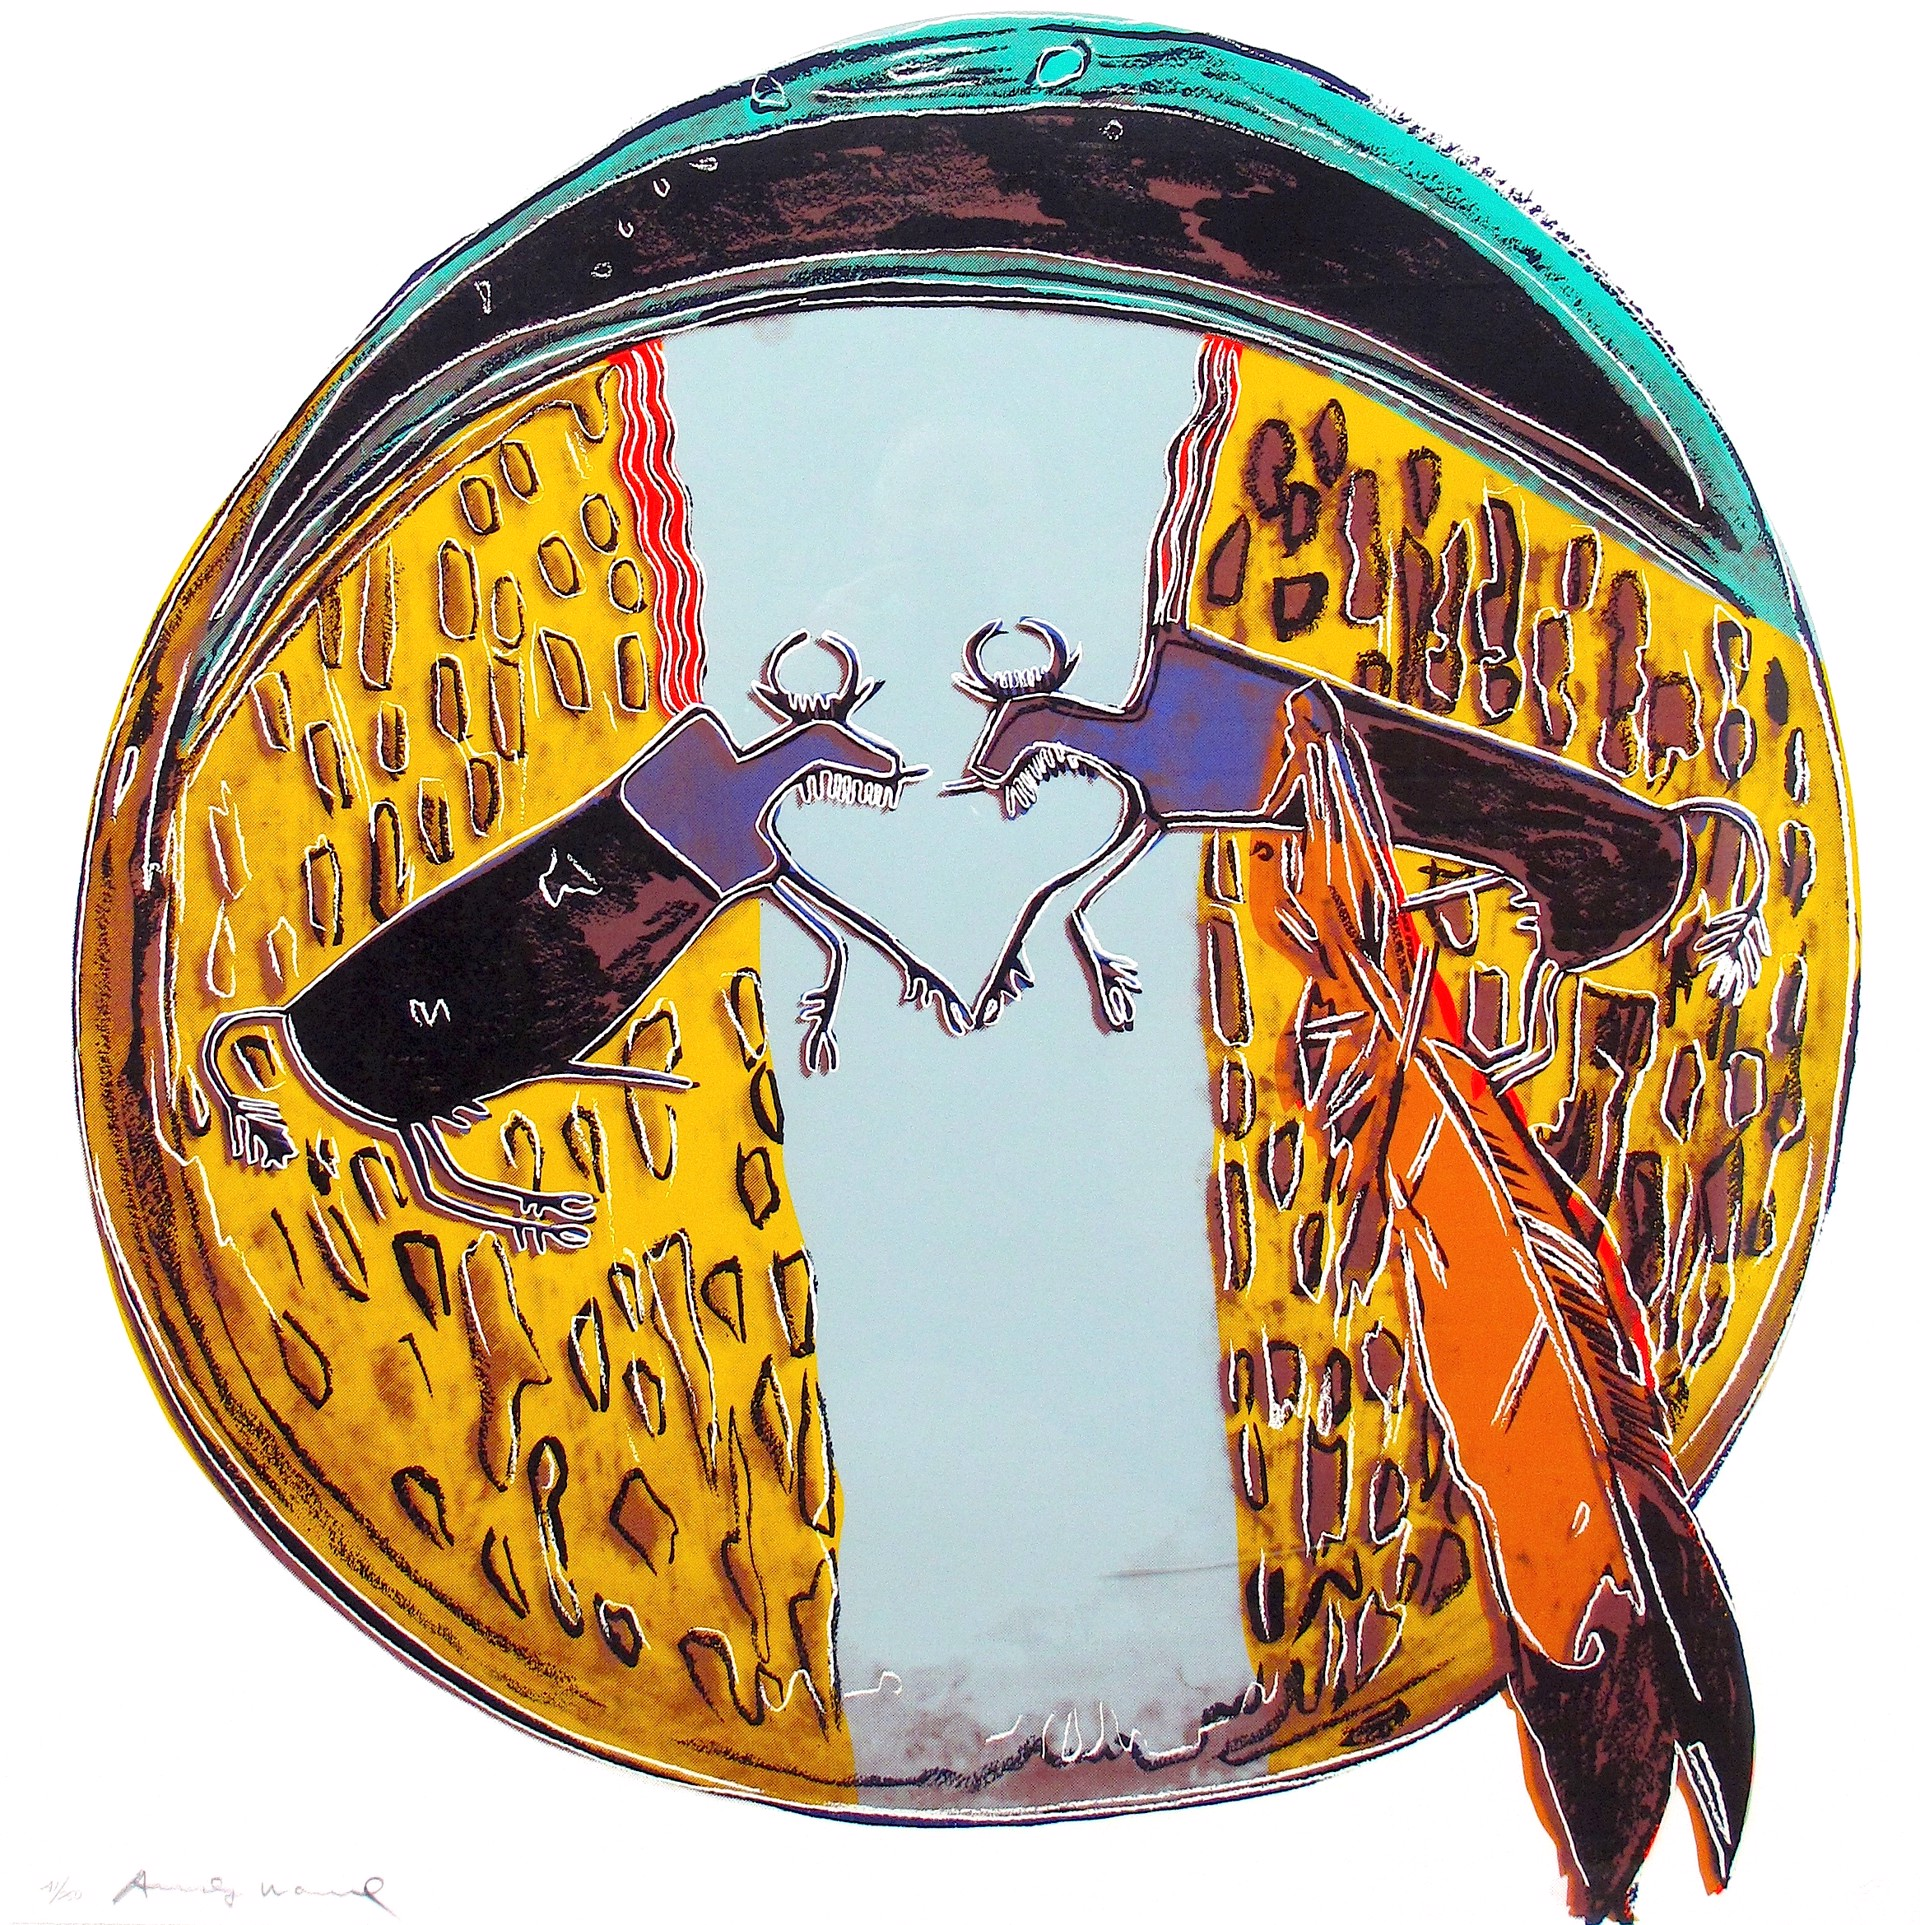 Plains Indian Shield (from Cowboys and Indians suite) by Andy Warhol